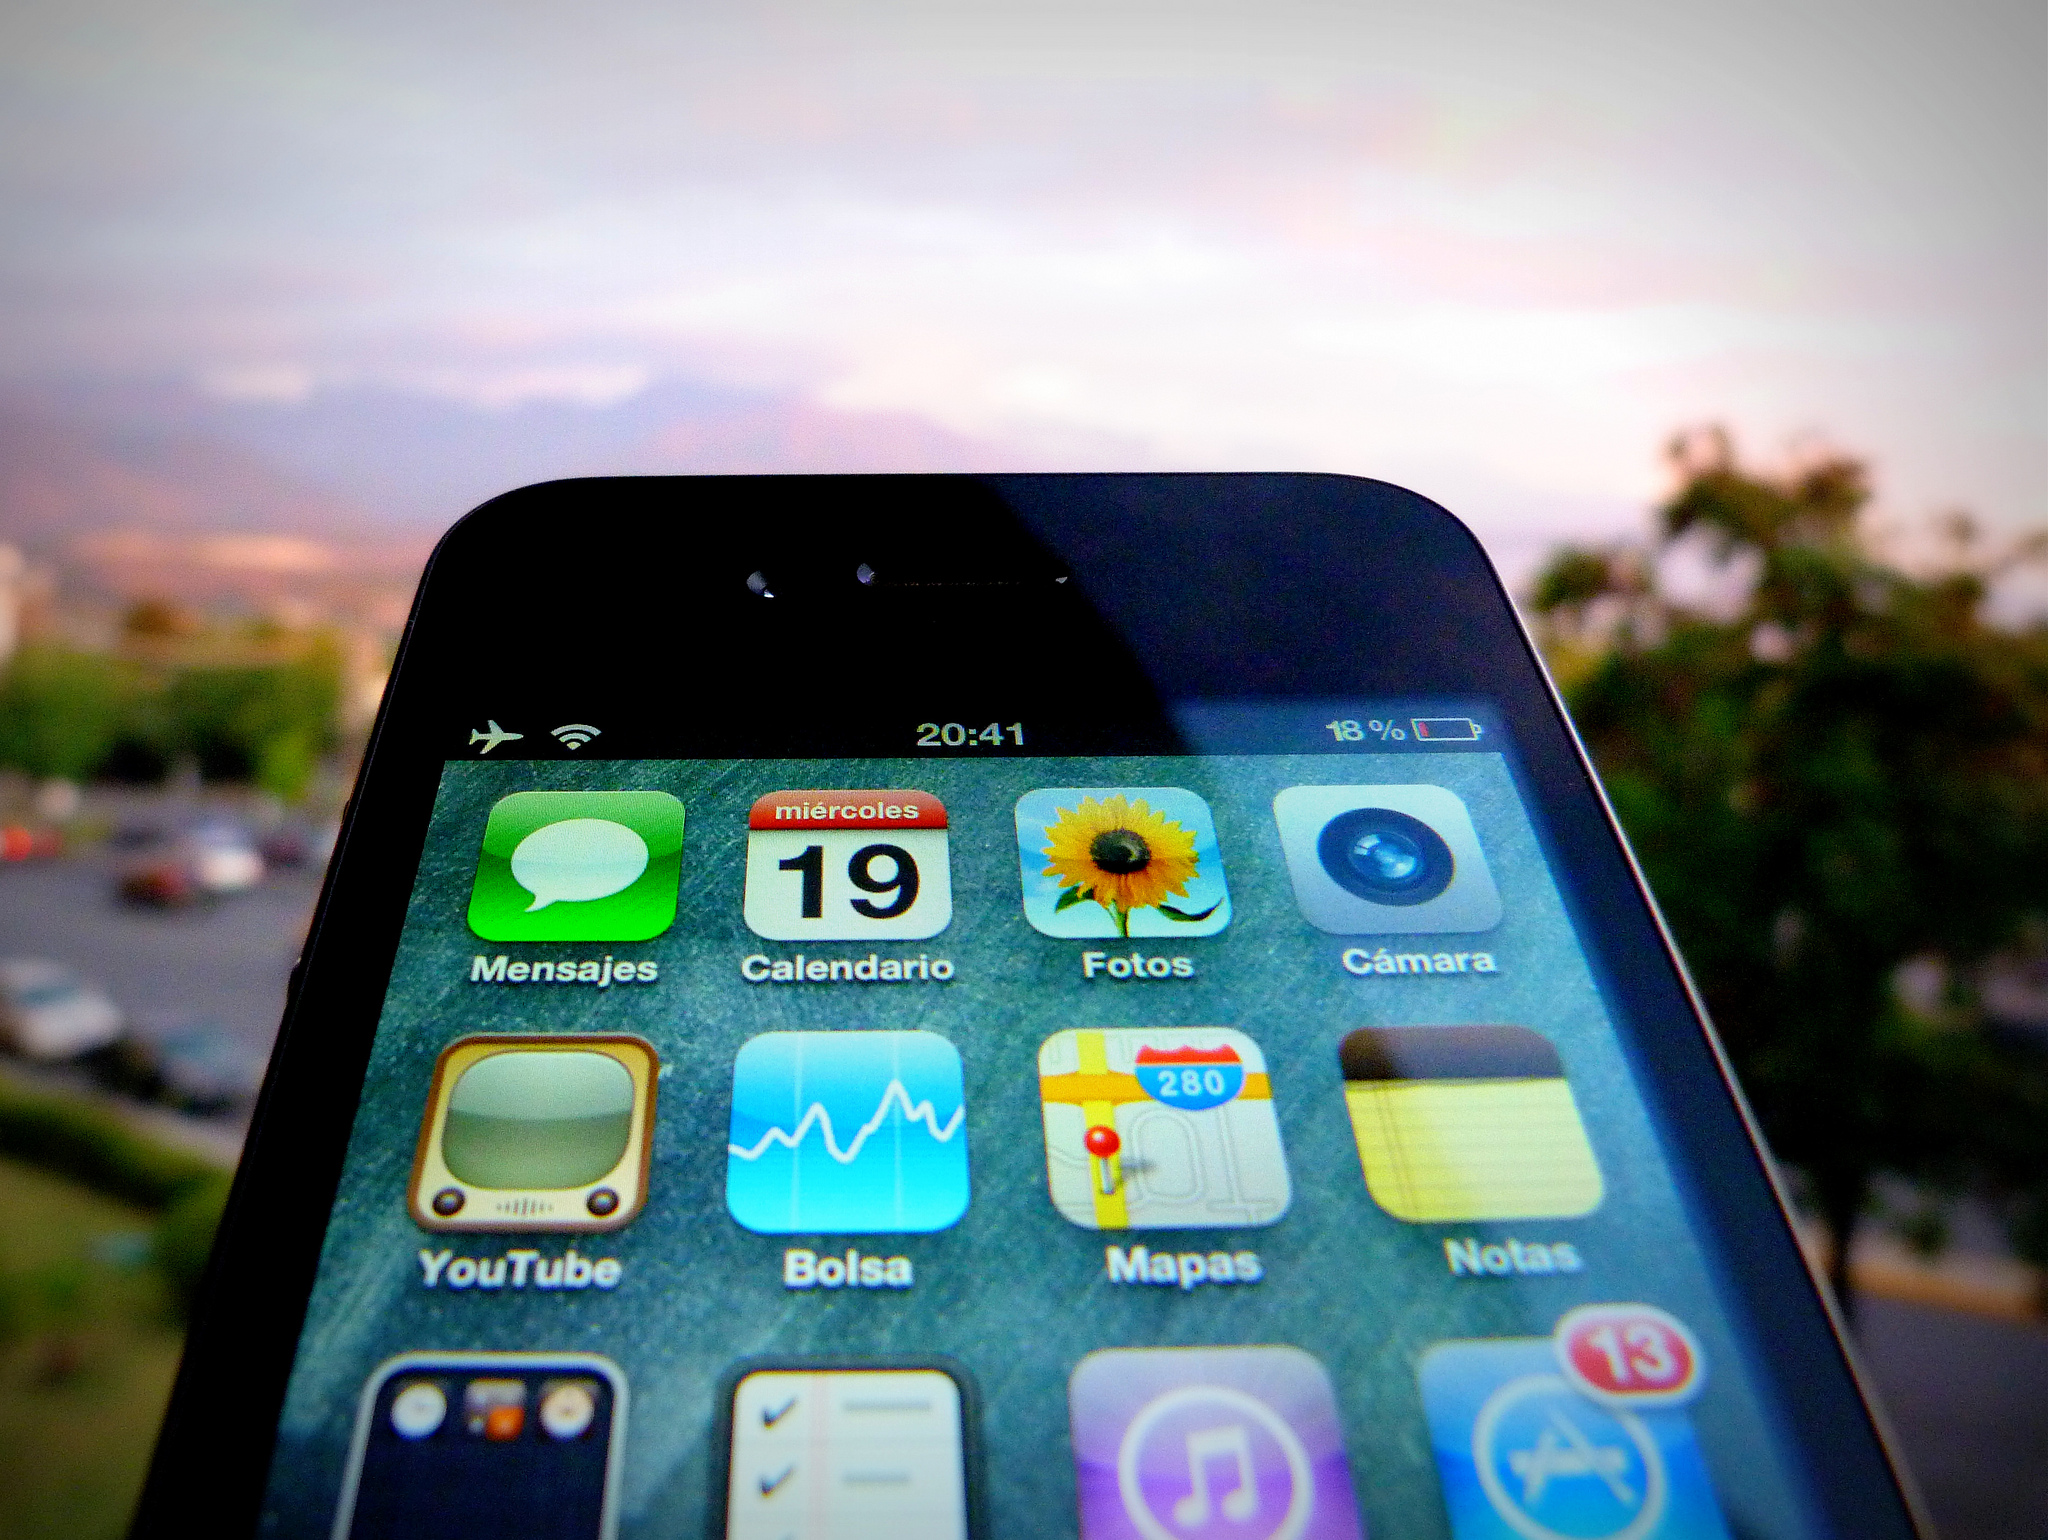 Comcast's mobile service due to be announced Thursday will be available on the iPhone. Image Gonzalo Baeza  CC BY 2.0